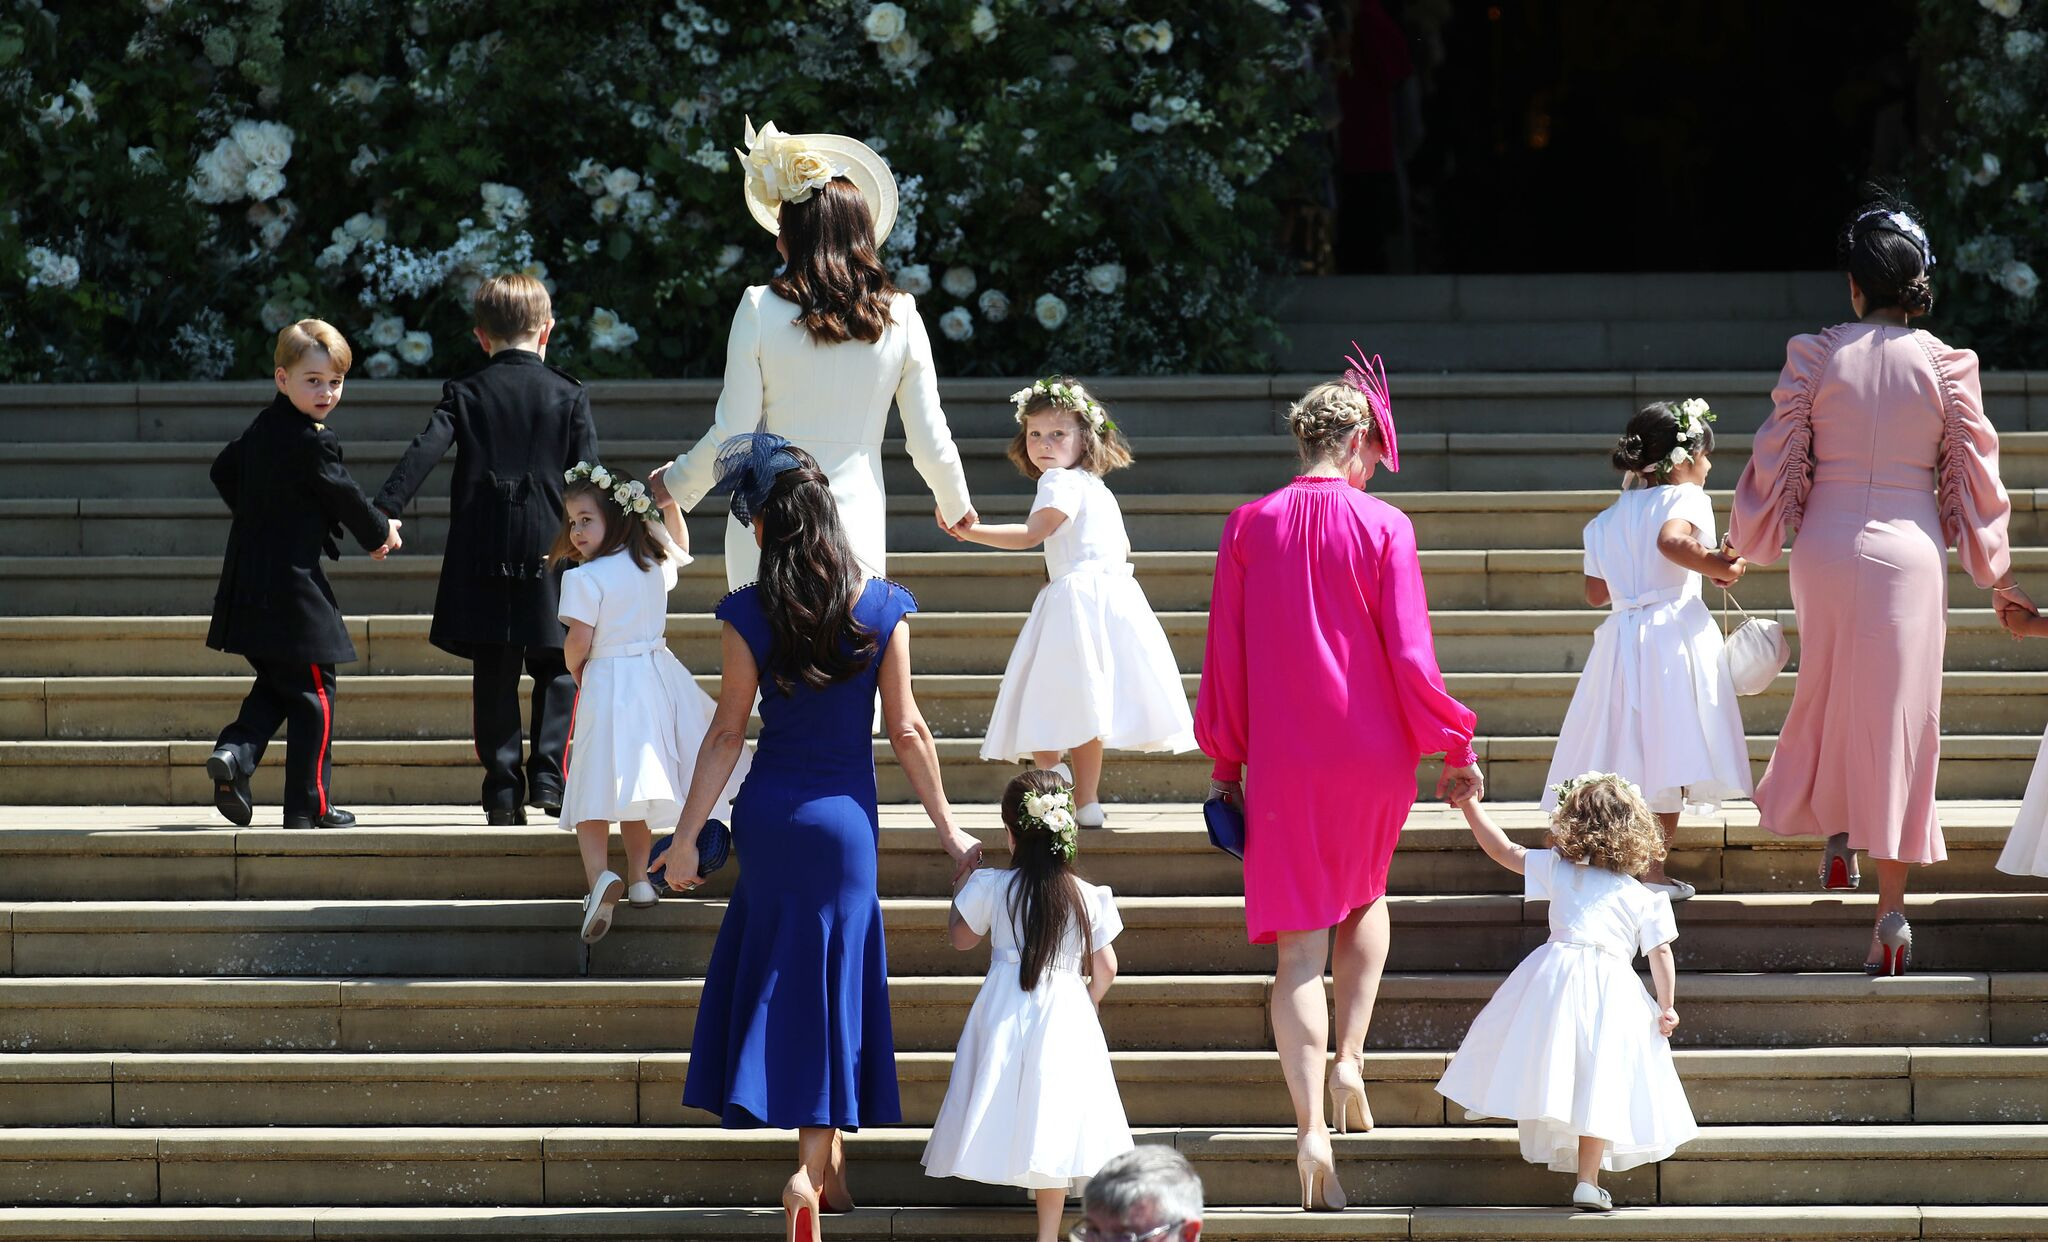 Les enfants du Prince William et de Kate Middleton arrivant au mariage du Prince Harry et Meghan Markle | Getty Images / Global Images Ukraine